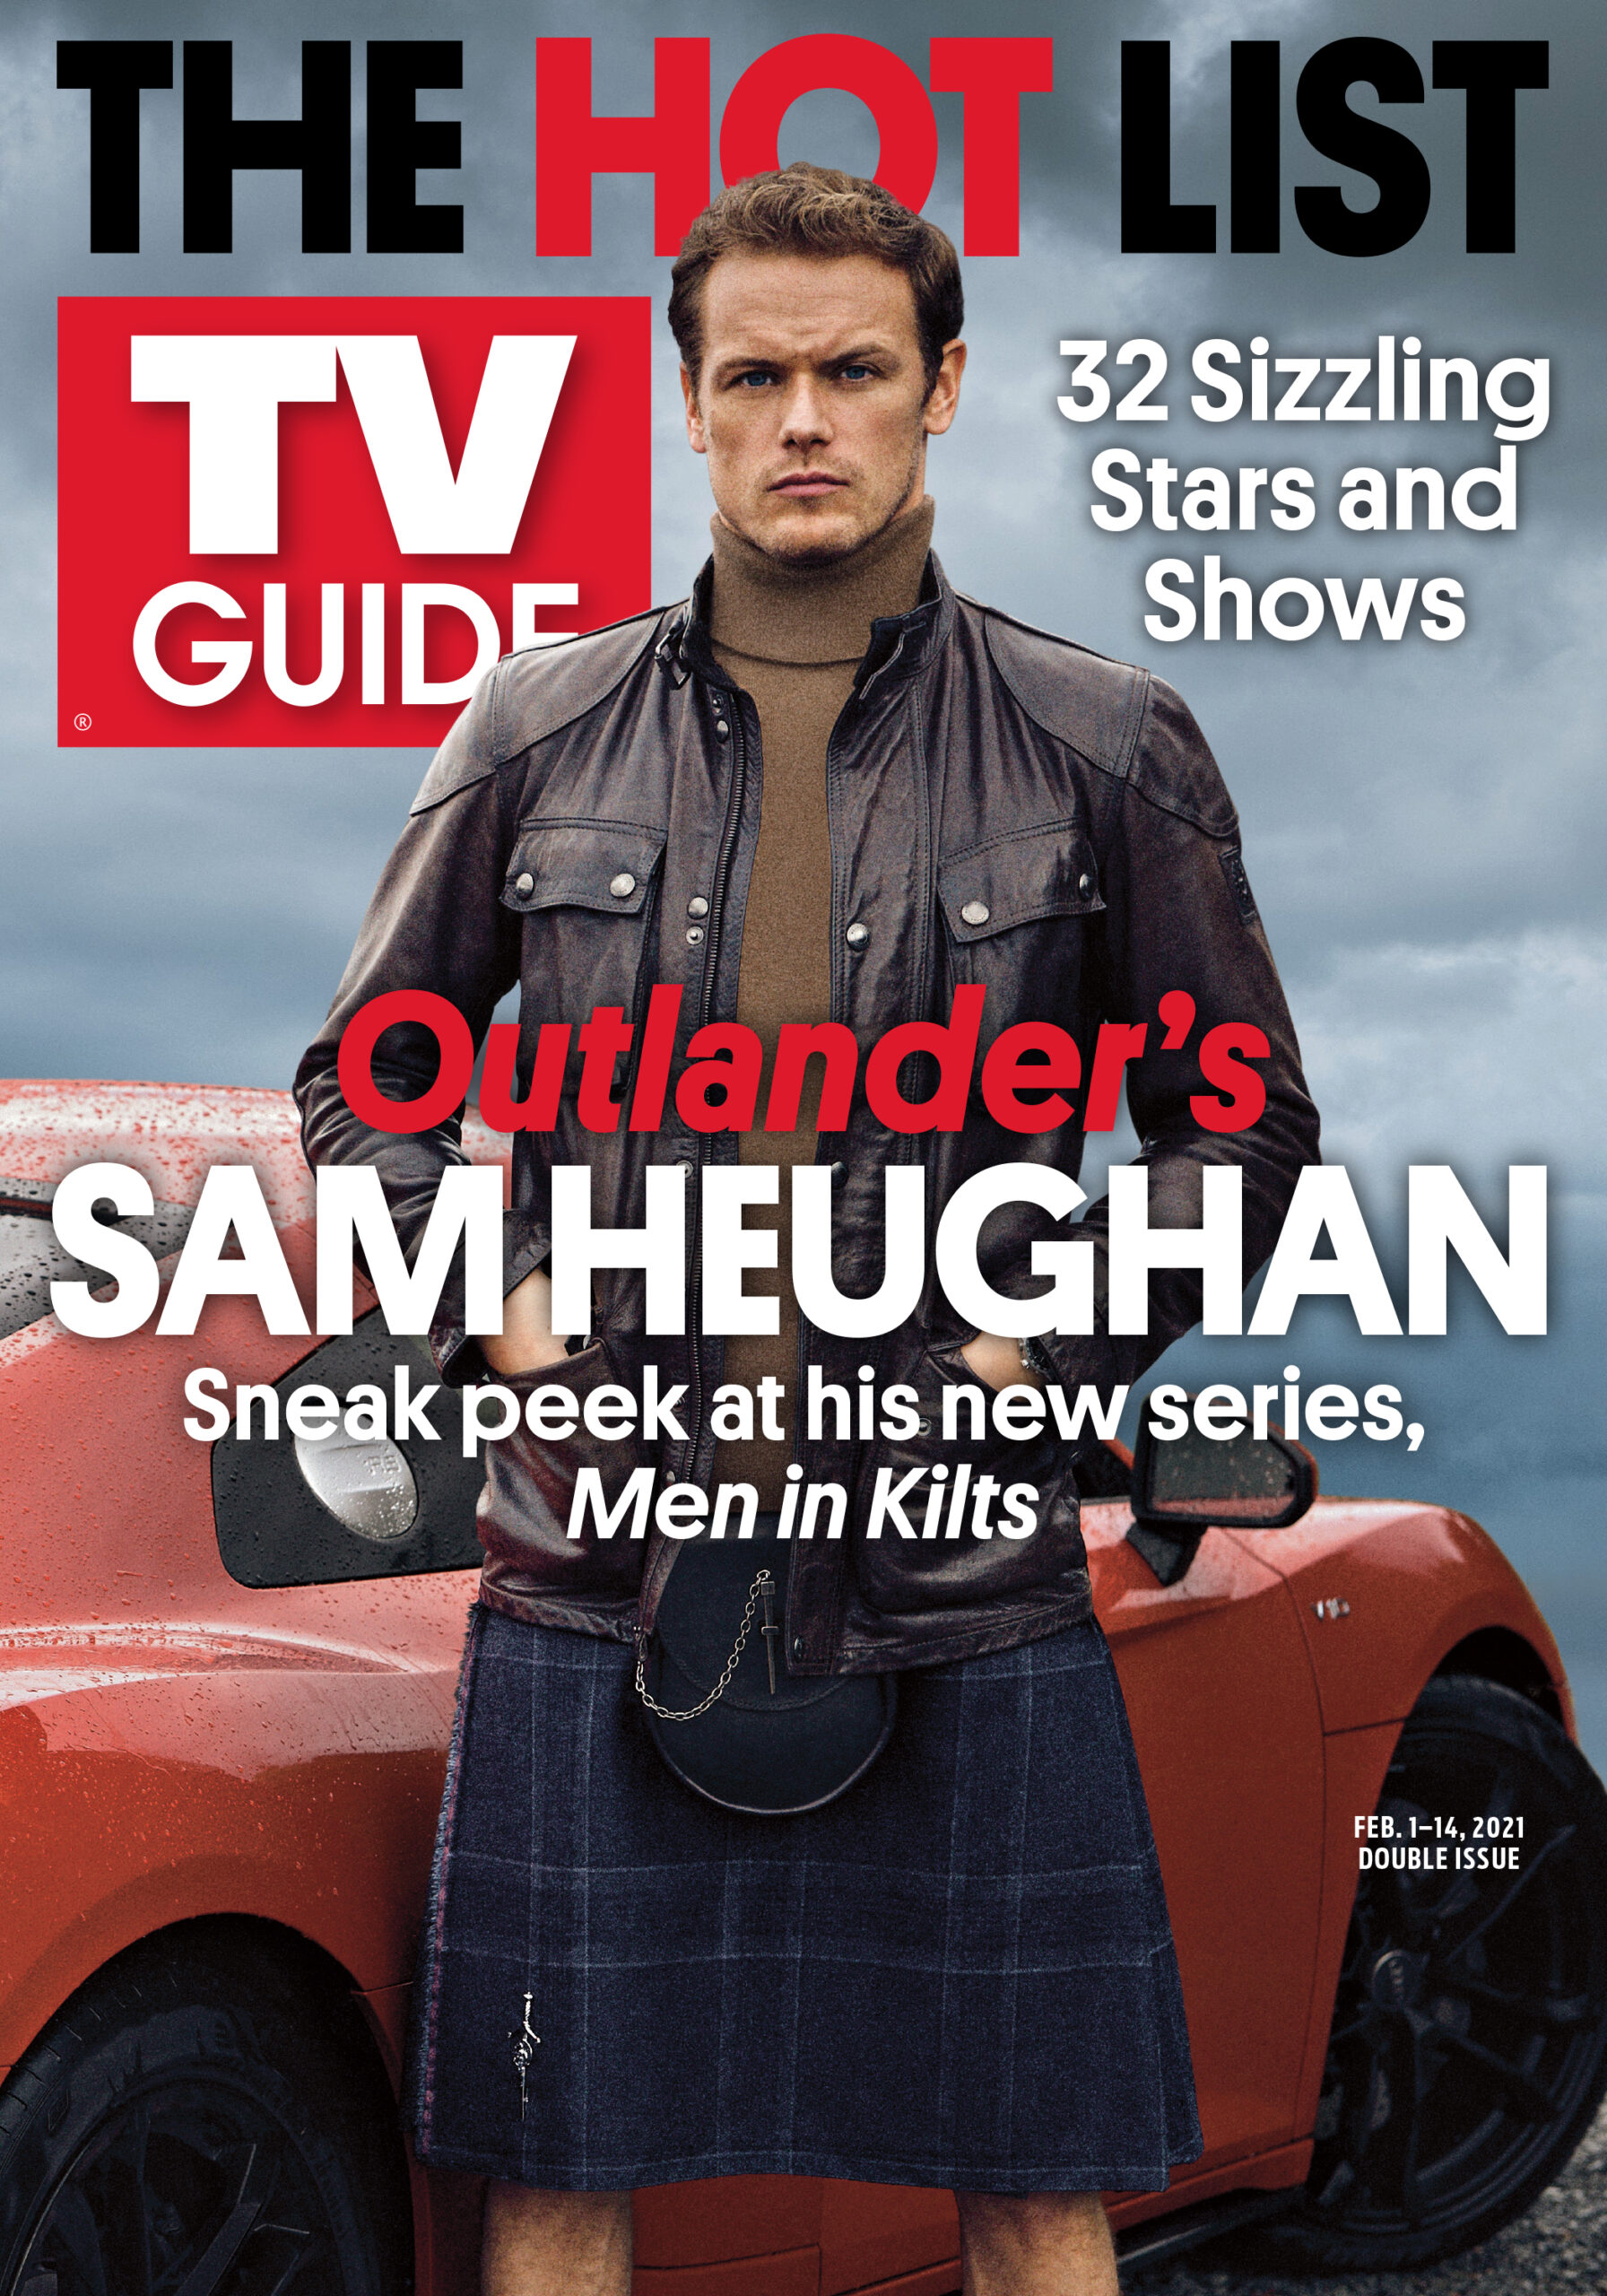 TV Guide - Outlander's Sam Hueghan Cover - February 1, 2021